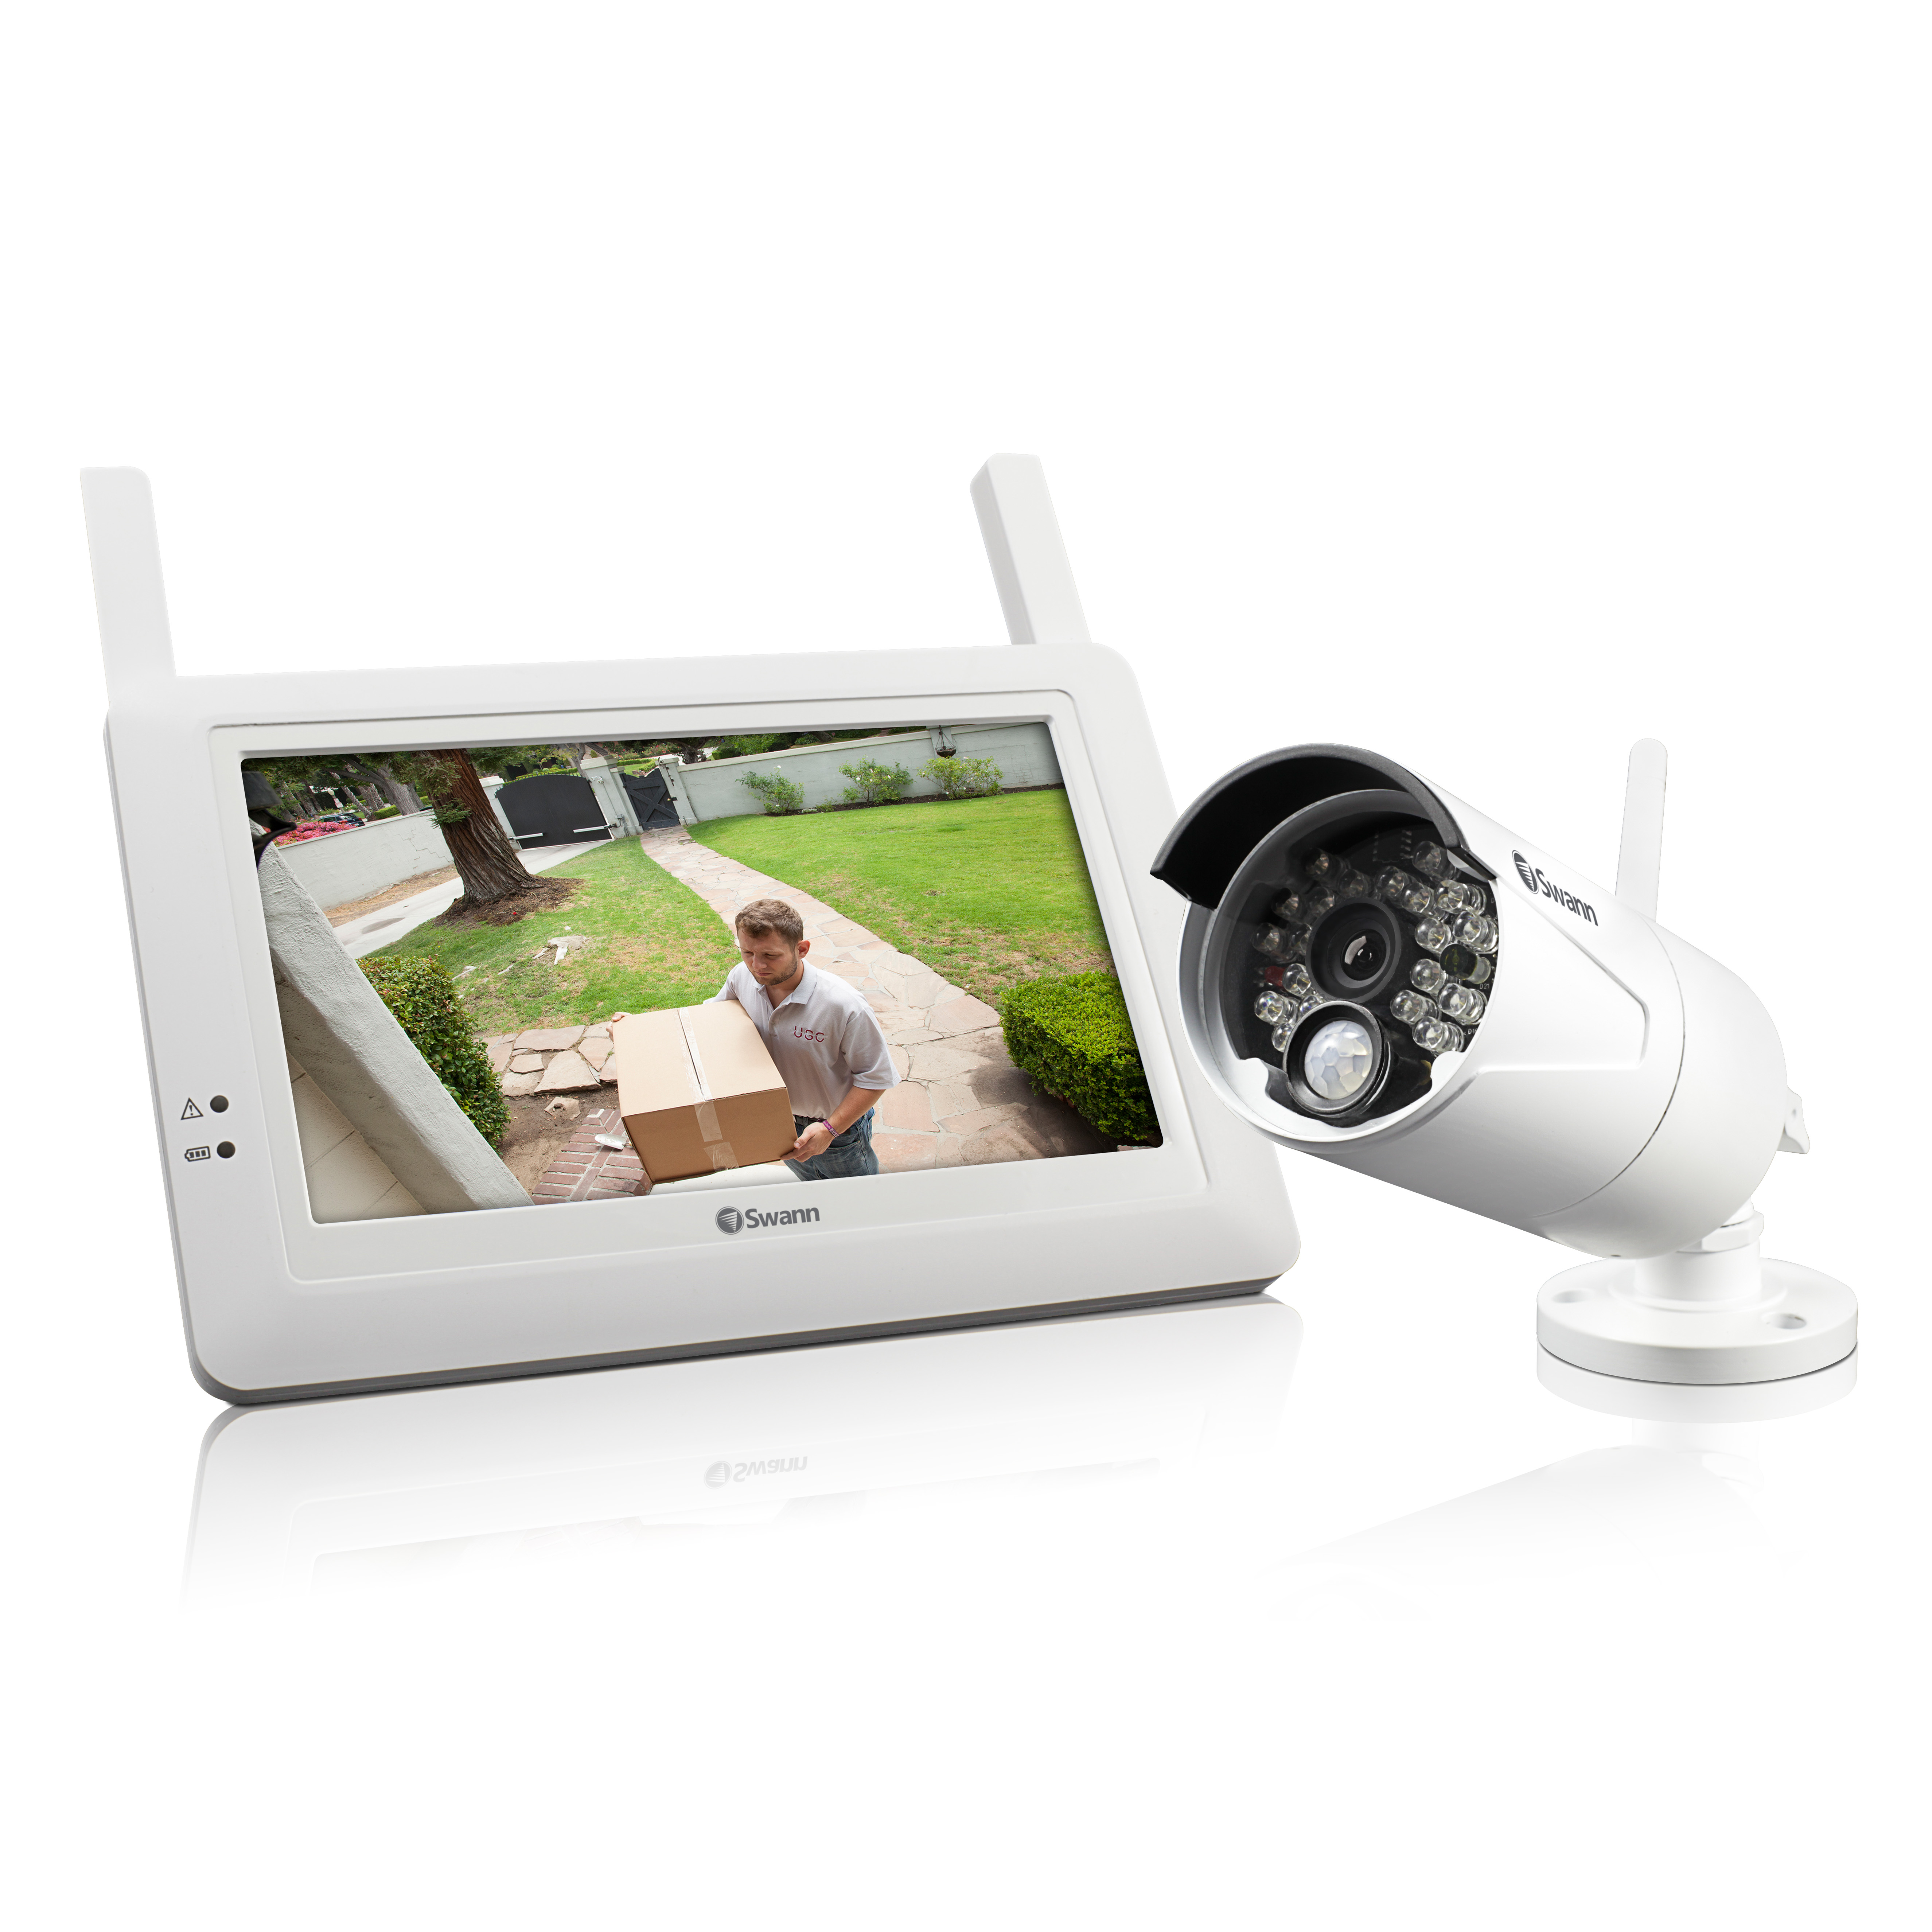 Adw 410 Wireless Security System Monitor And Camera Australia